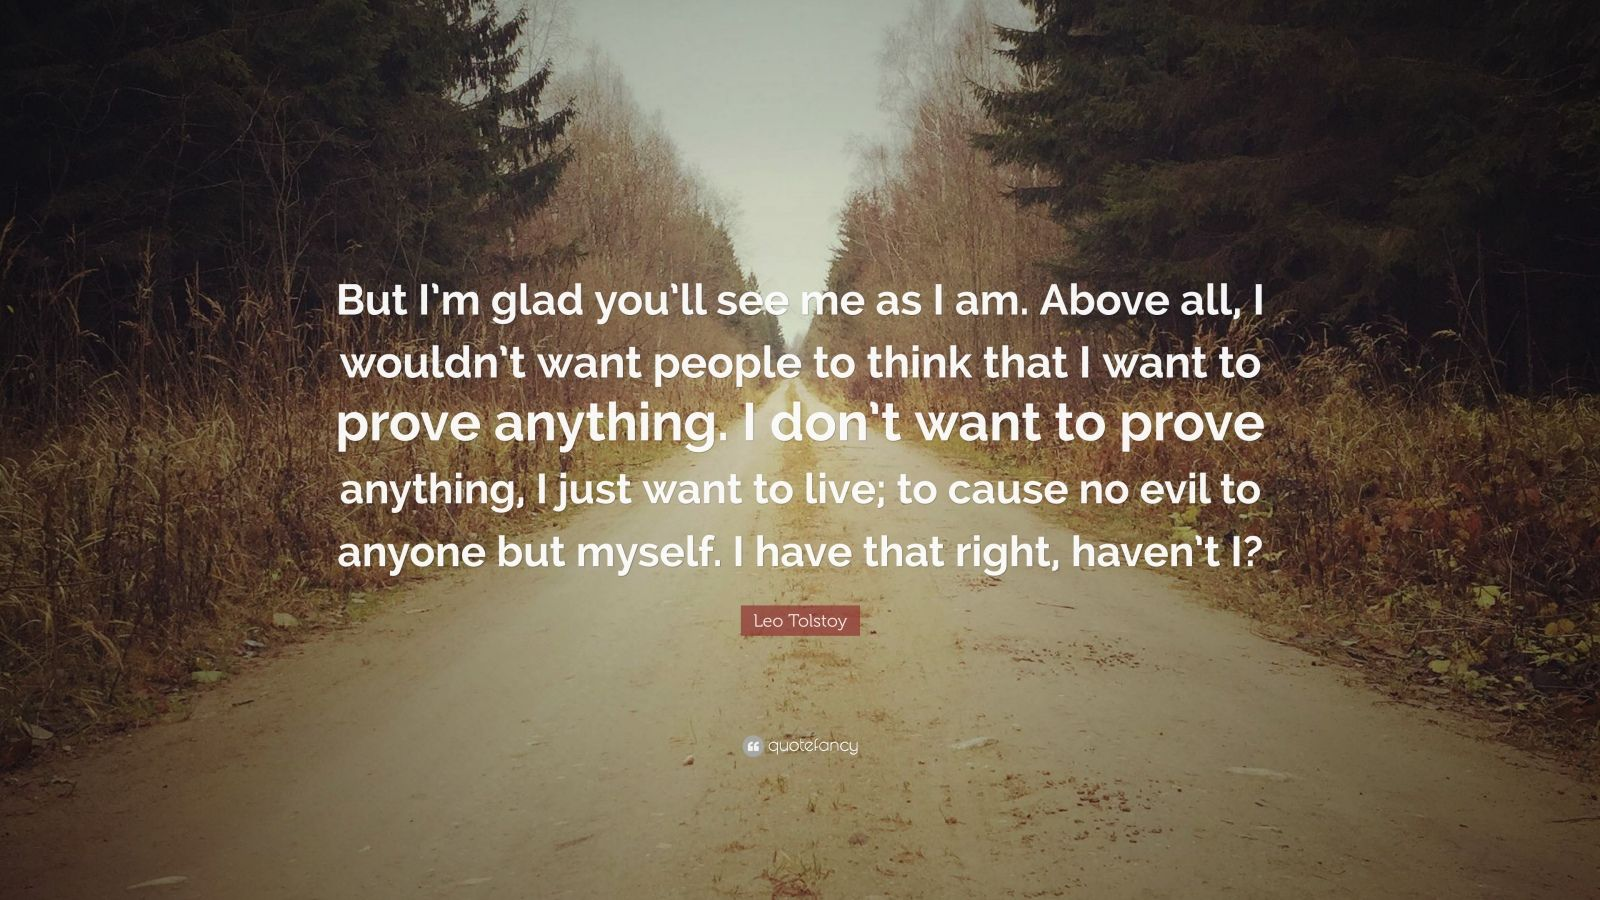 """Leo Tolstoy Quote: """"But I'm glad you'll see me as I am. Above all, I wouldn't want people to think that I want to prove anything. I don't want to prove anything, I just want to live; to cause no evil to anyone but myself. I have that right, haven't I?"""""""